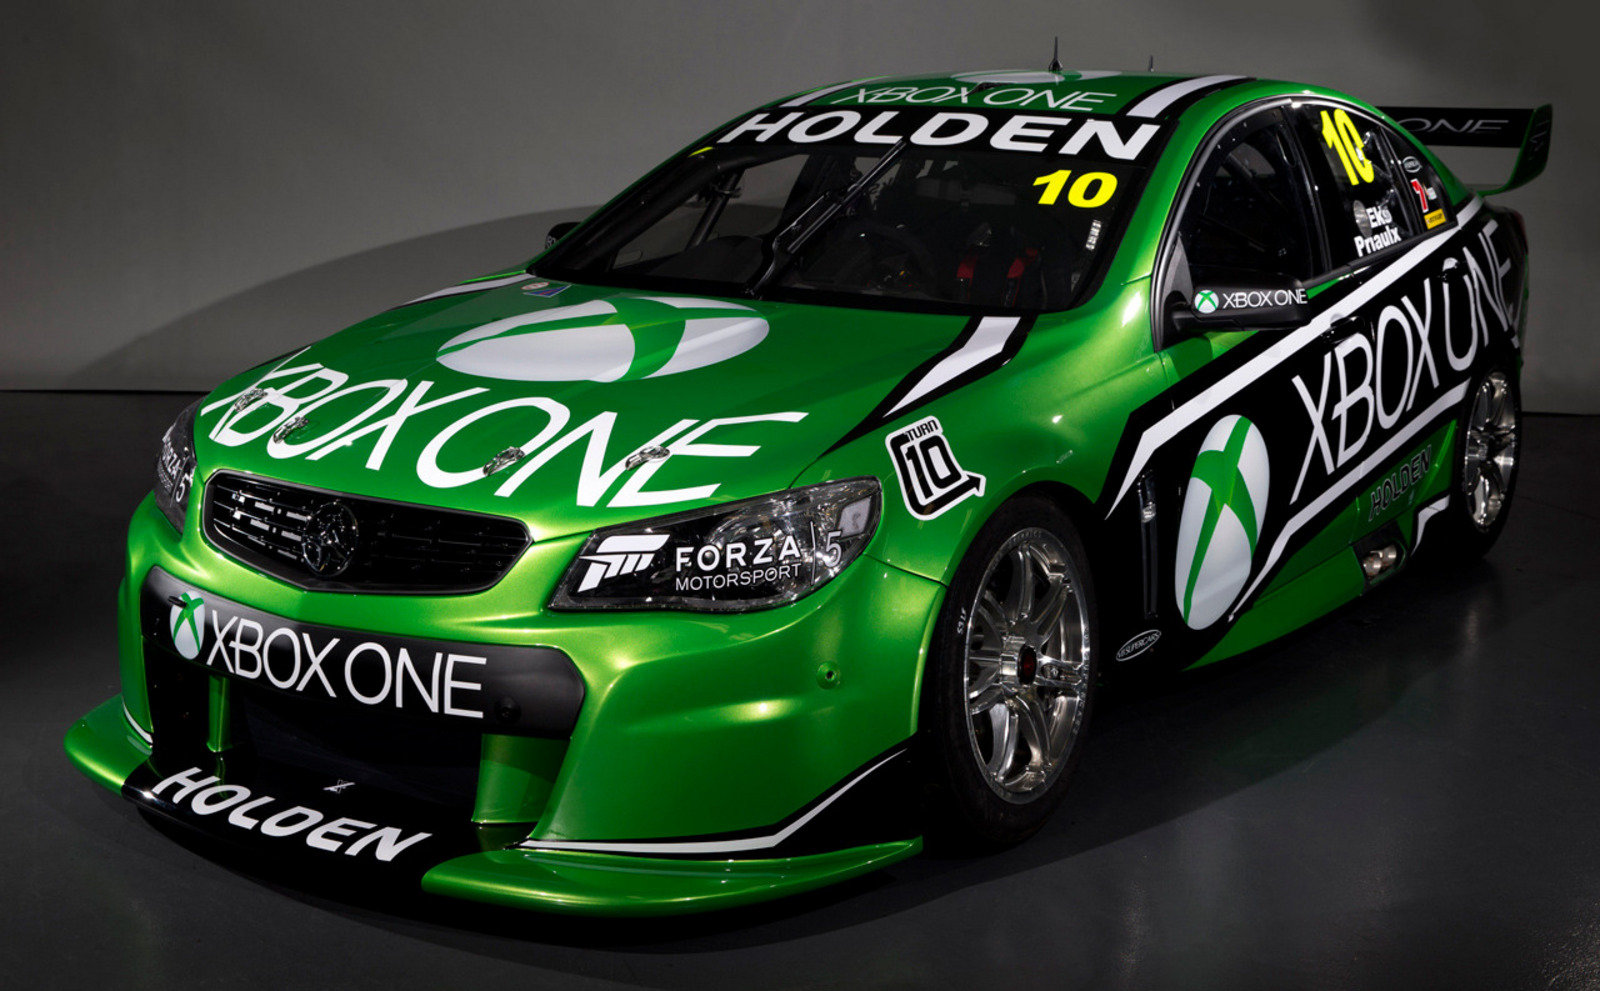 2013 holden vf commodore xbox one racing by triple eight. Black Bedroom Furniture Sets. Home Design Ideas